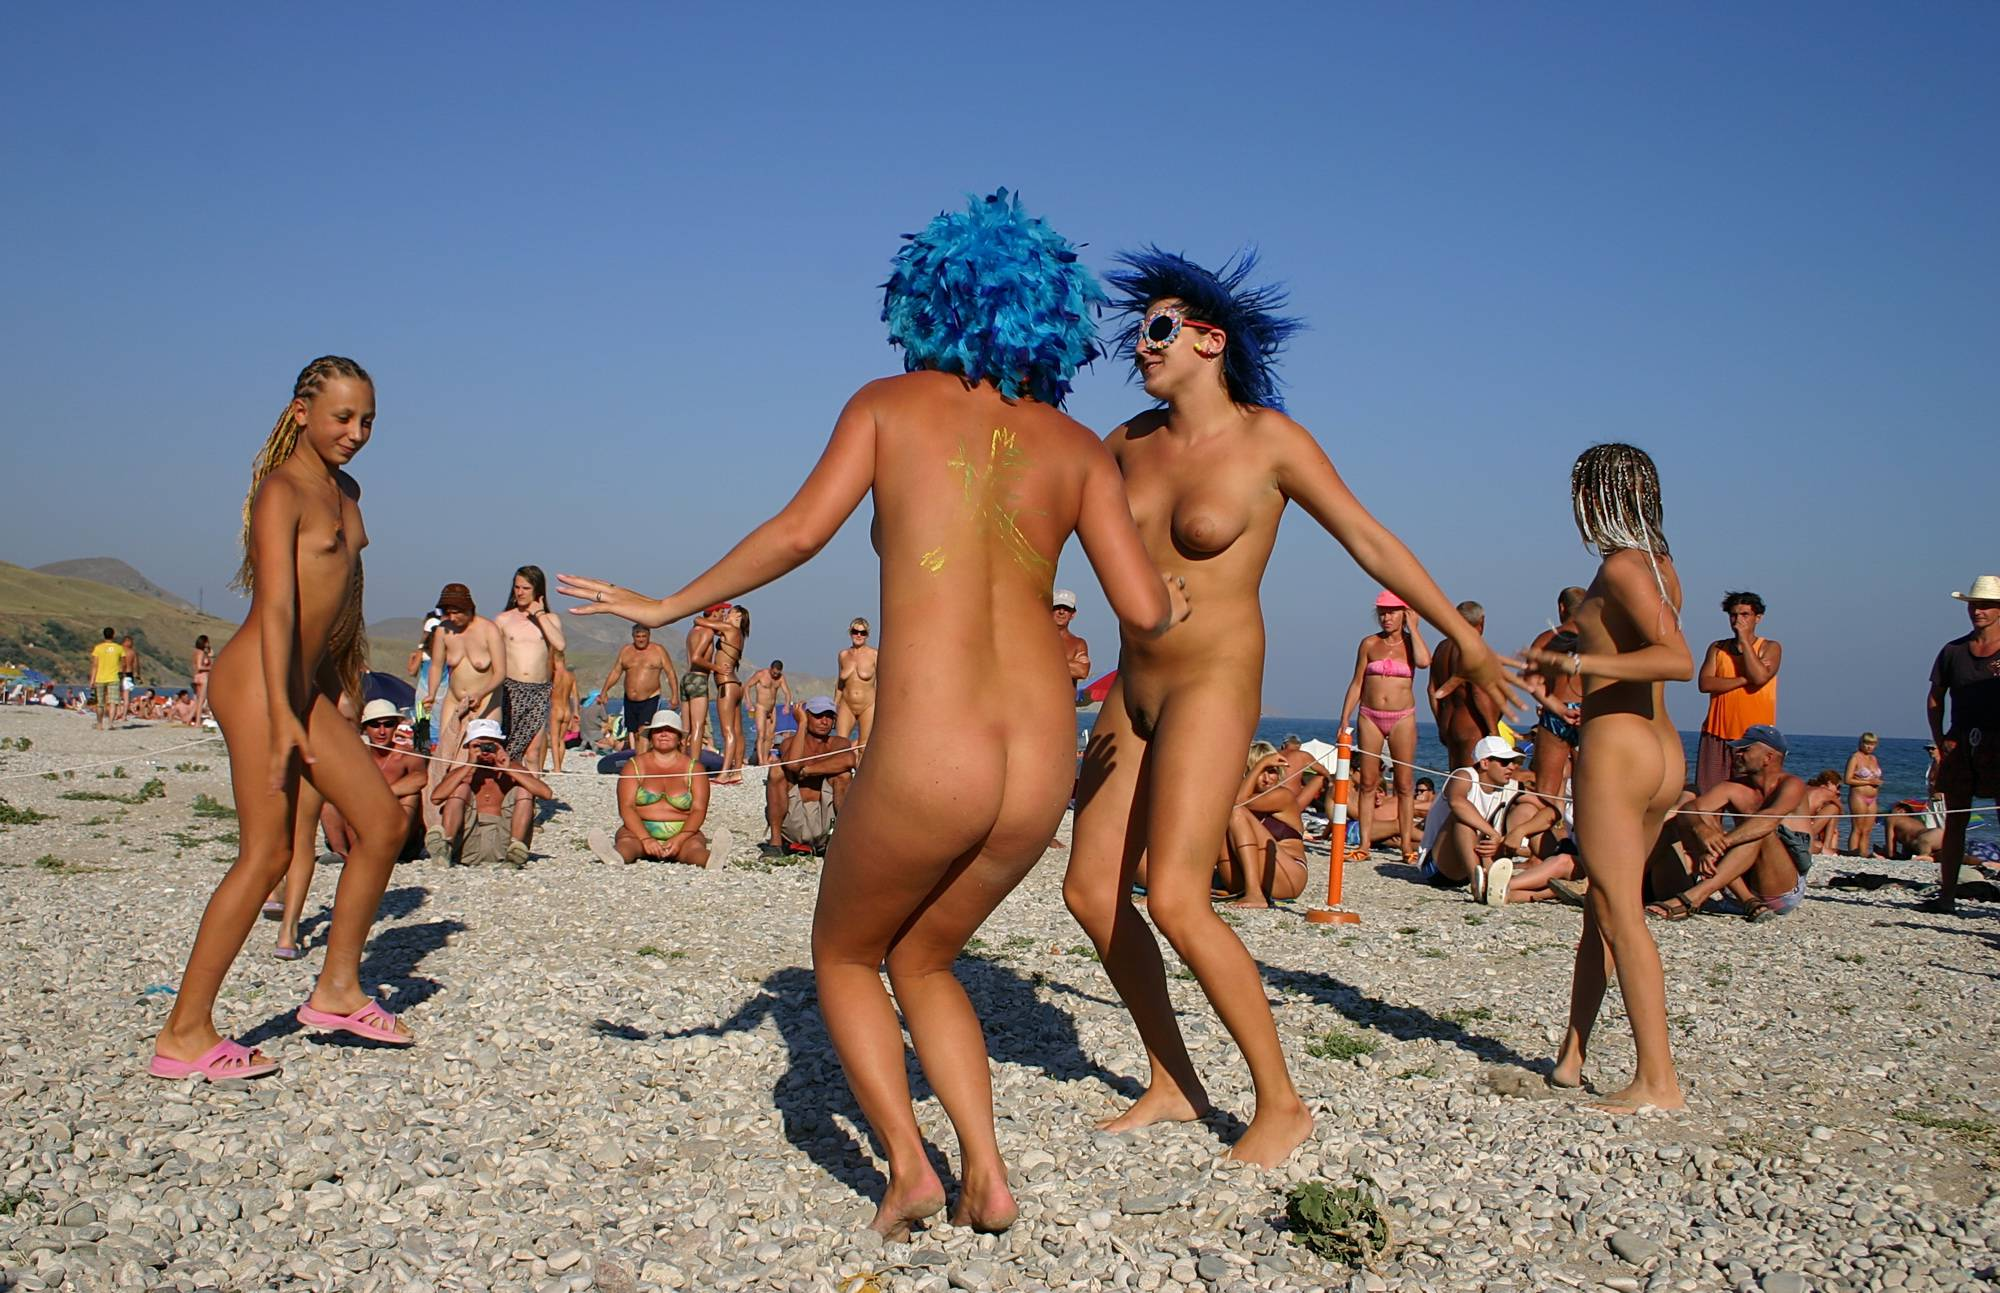 Nudist Photos Blue Haired Sand Dance - 1